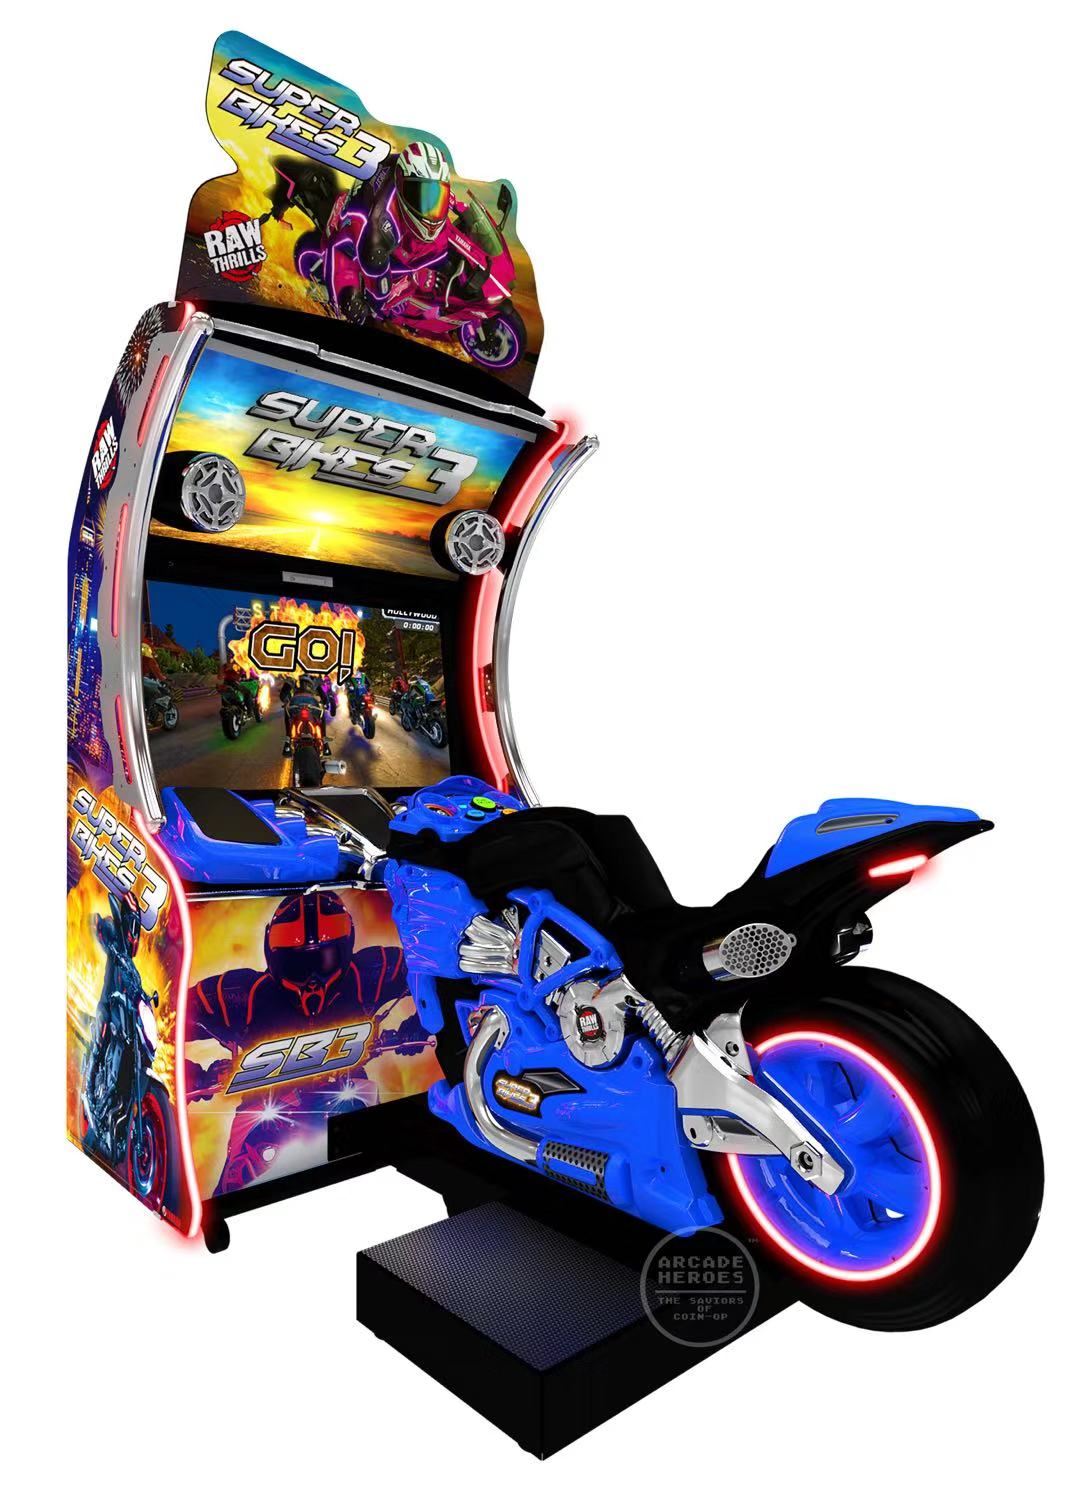 Hotselling super bike 3 simulator motorcycle racing arcade game machine for game center